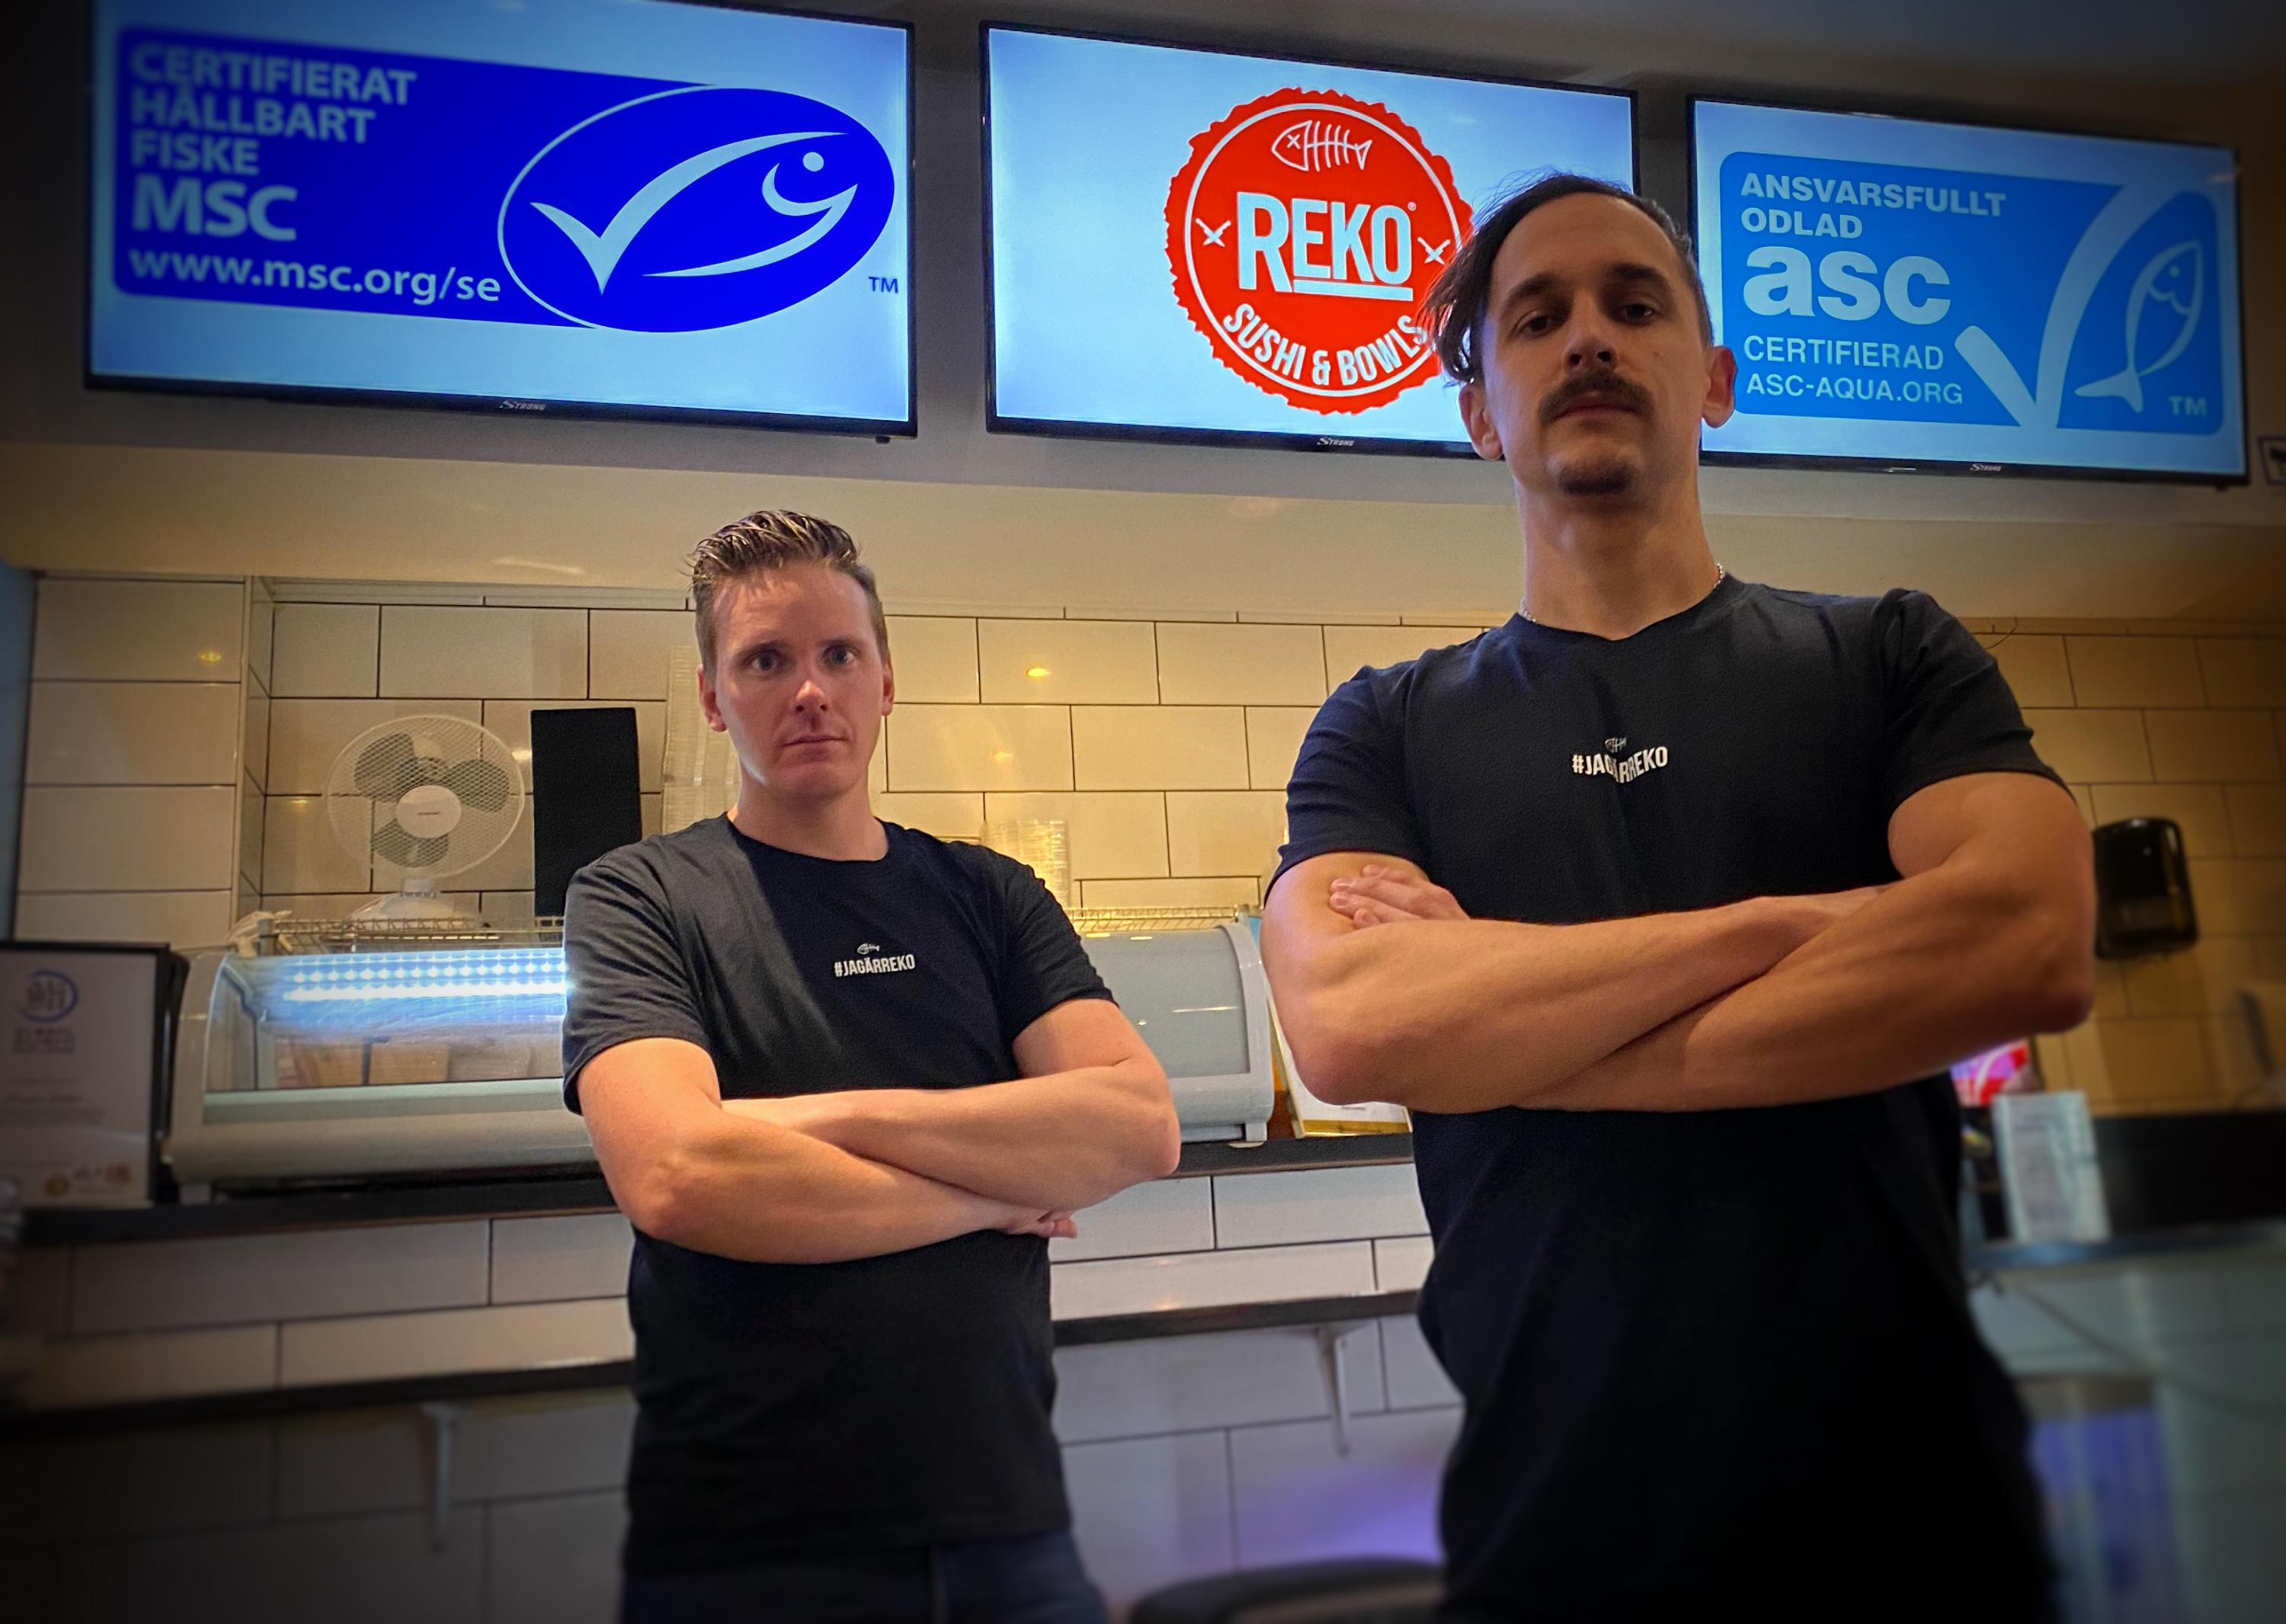 The founders of Reko Sushi and Bowls stand behind the counter of one of their restaurants with ASC and MSC logos on screens behind them